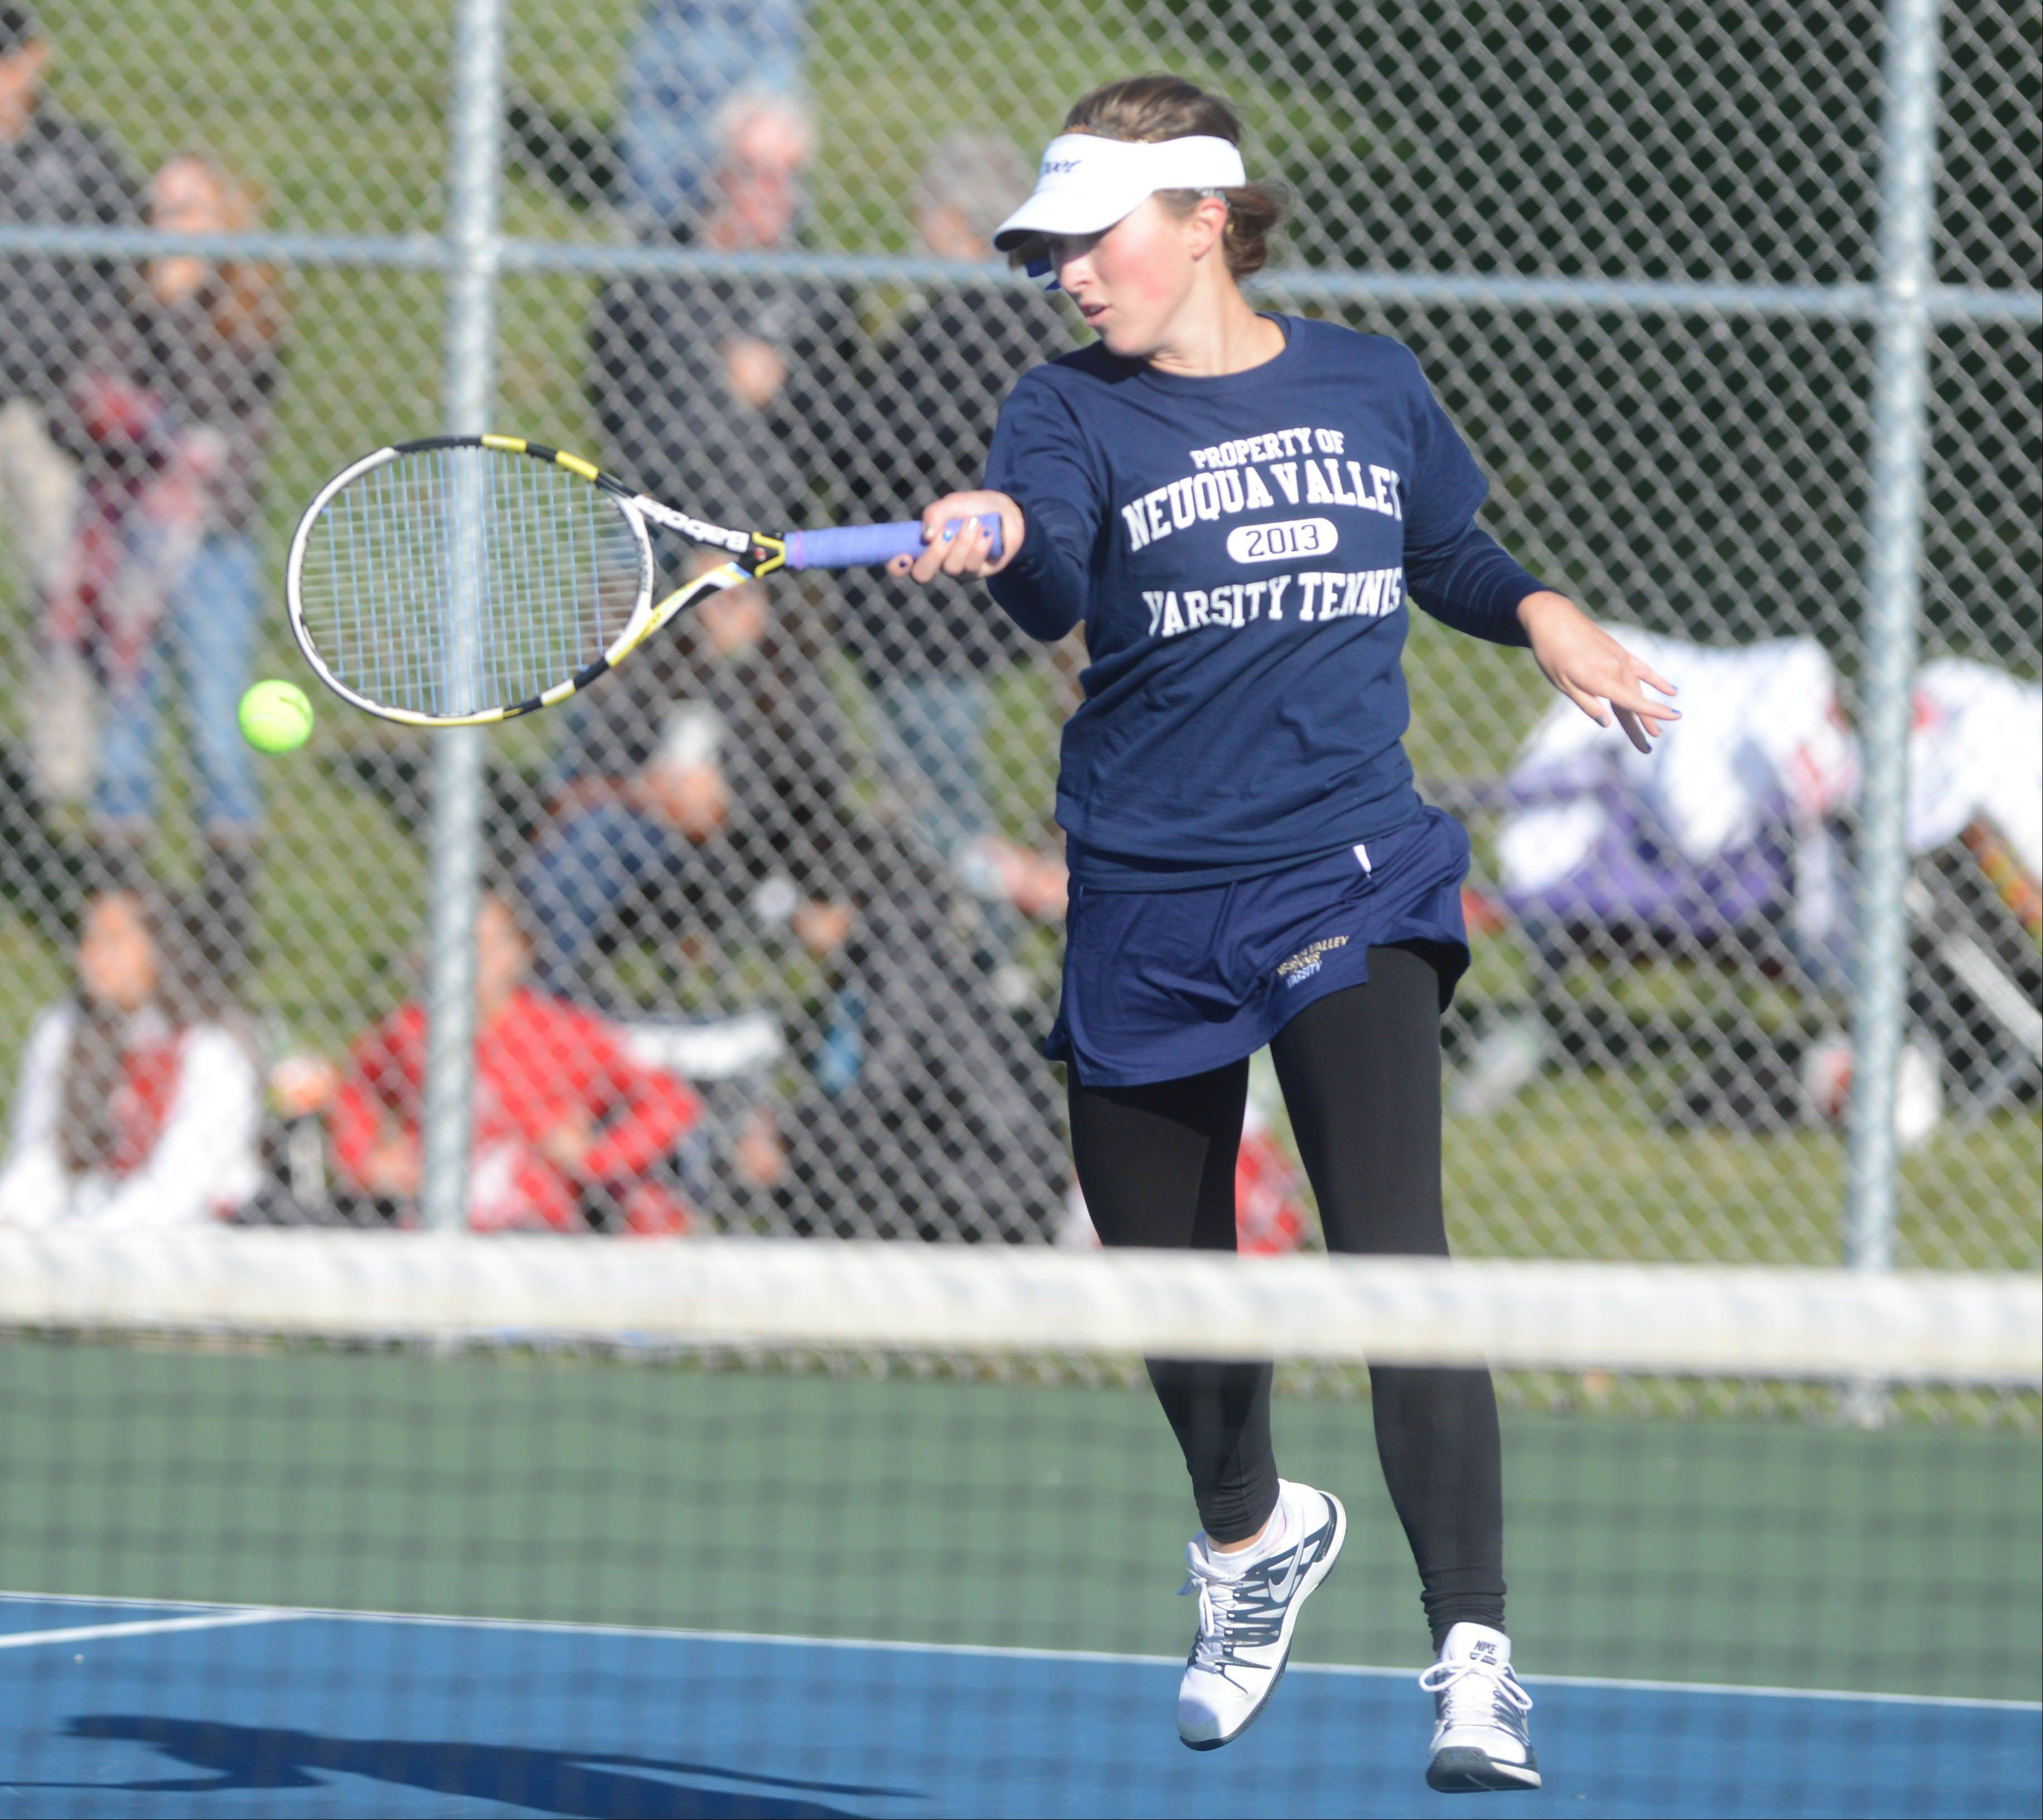 Taylor Hershey of Neuqua Valley took part in the Naperville North girls tennis sectional Saturday. She was playing with teammate Riti Vohra.